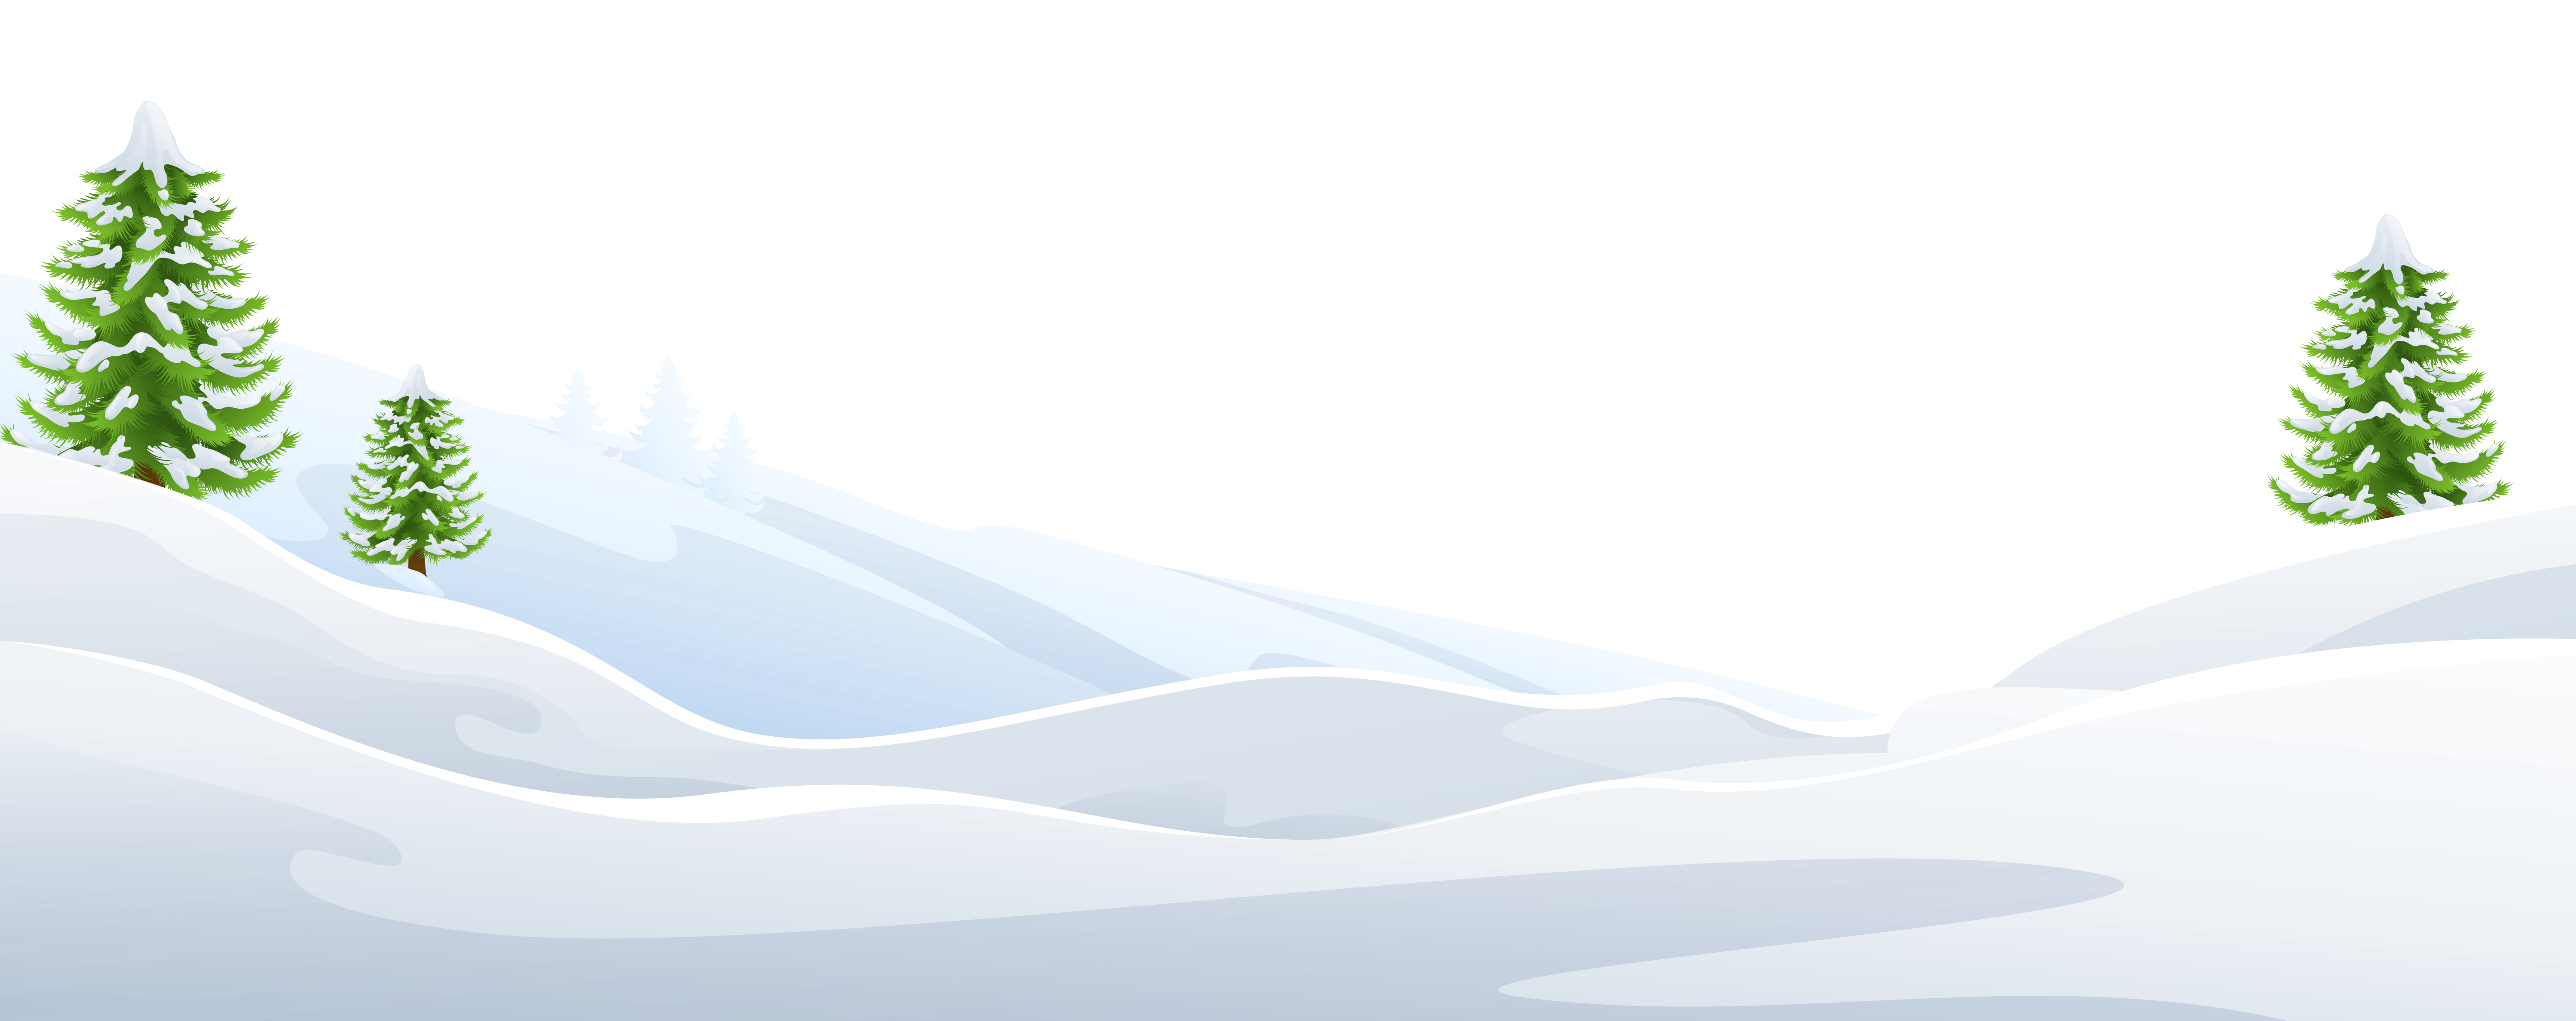 Ground with trees png. Floor clipart snowy